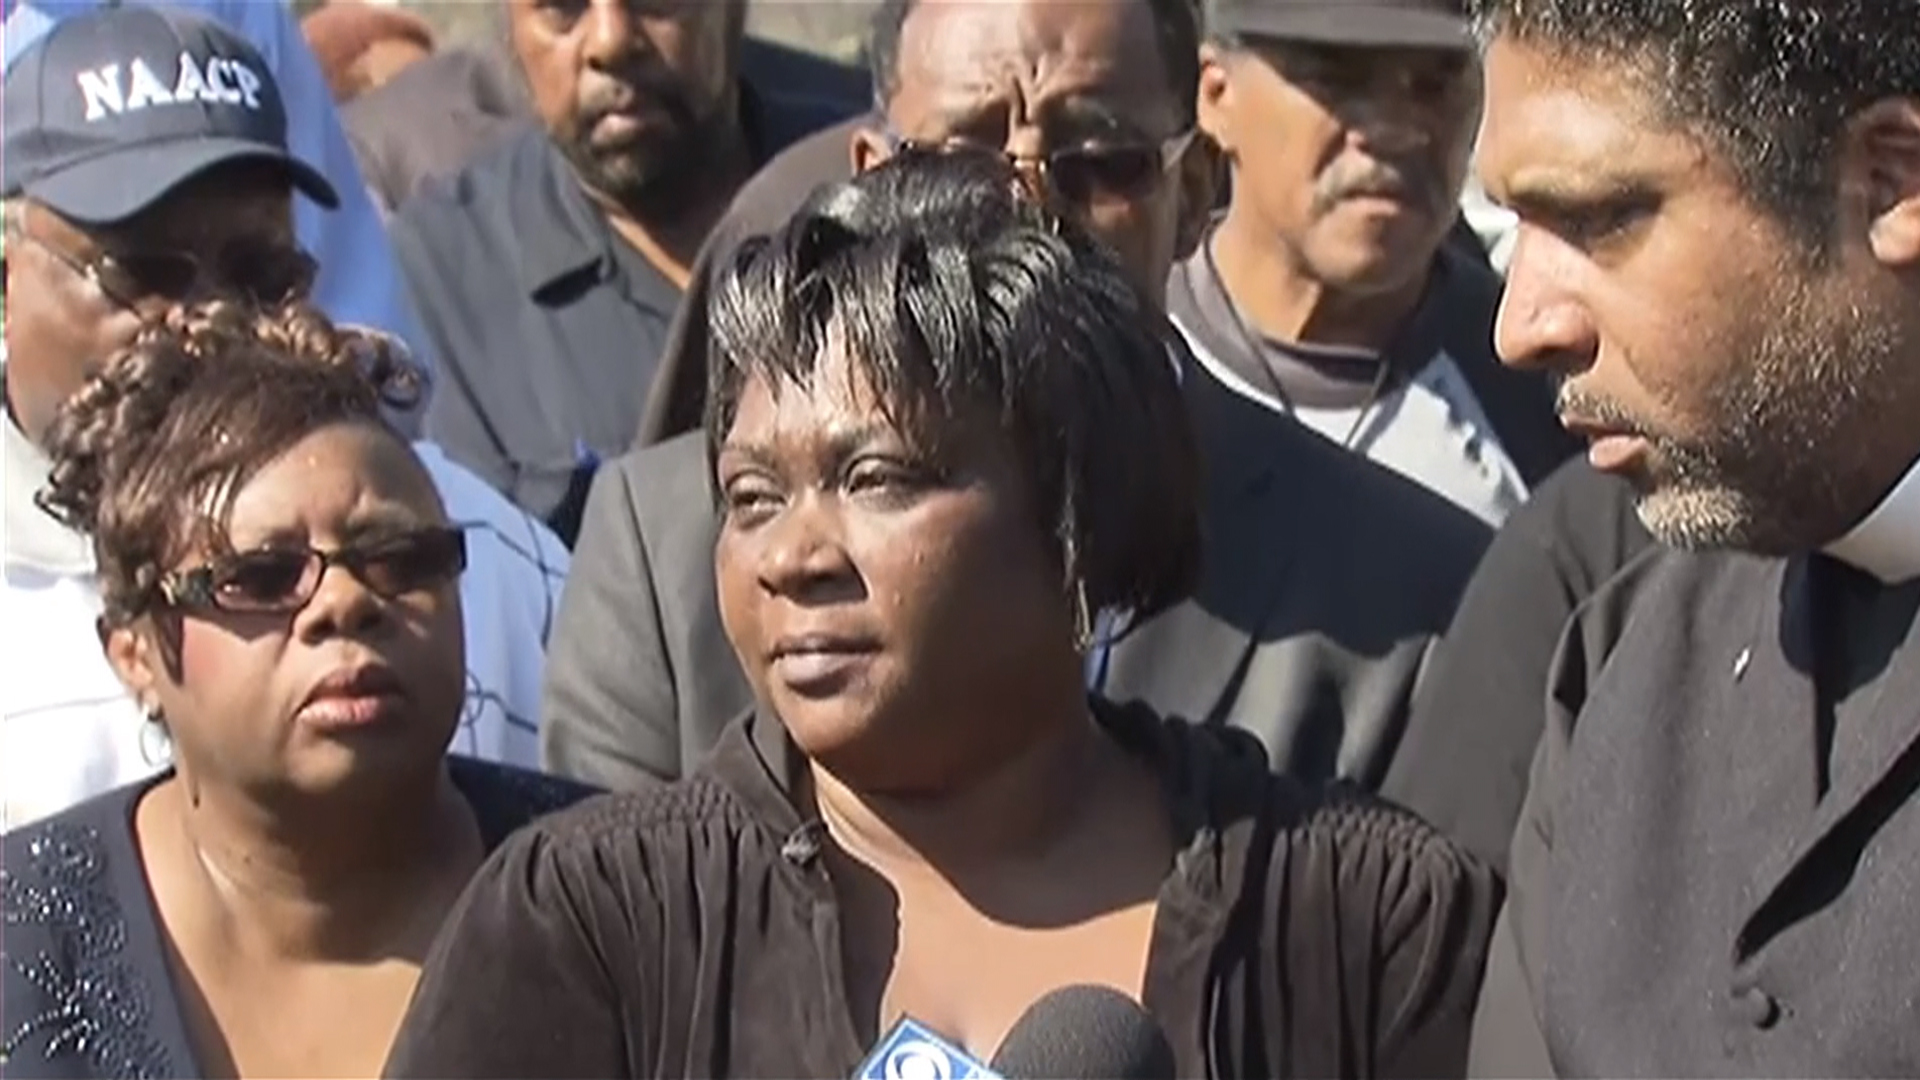 NAACP Leaders Gather to Address Akiel Denkins Shooting